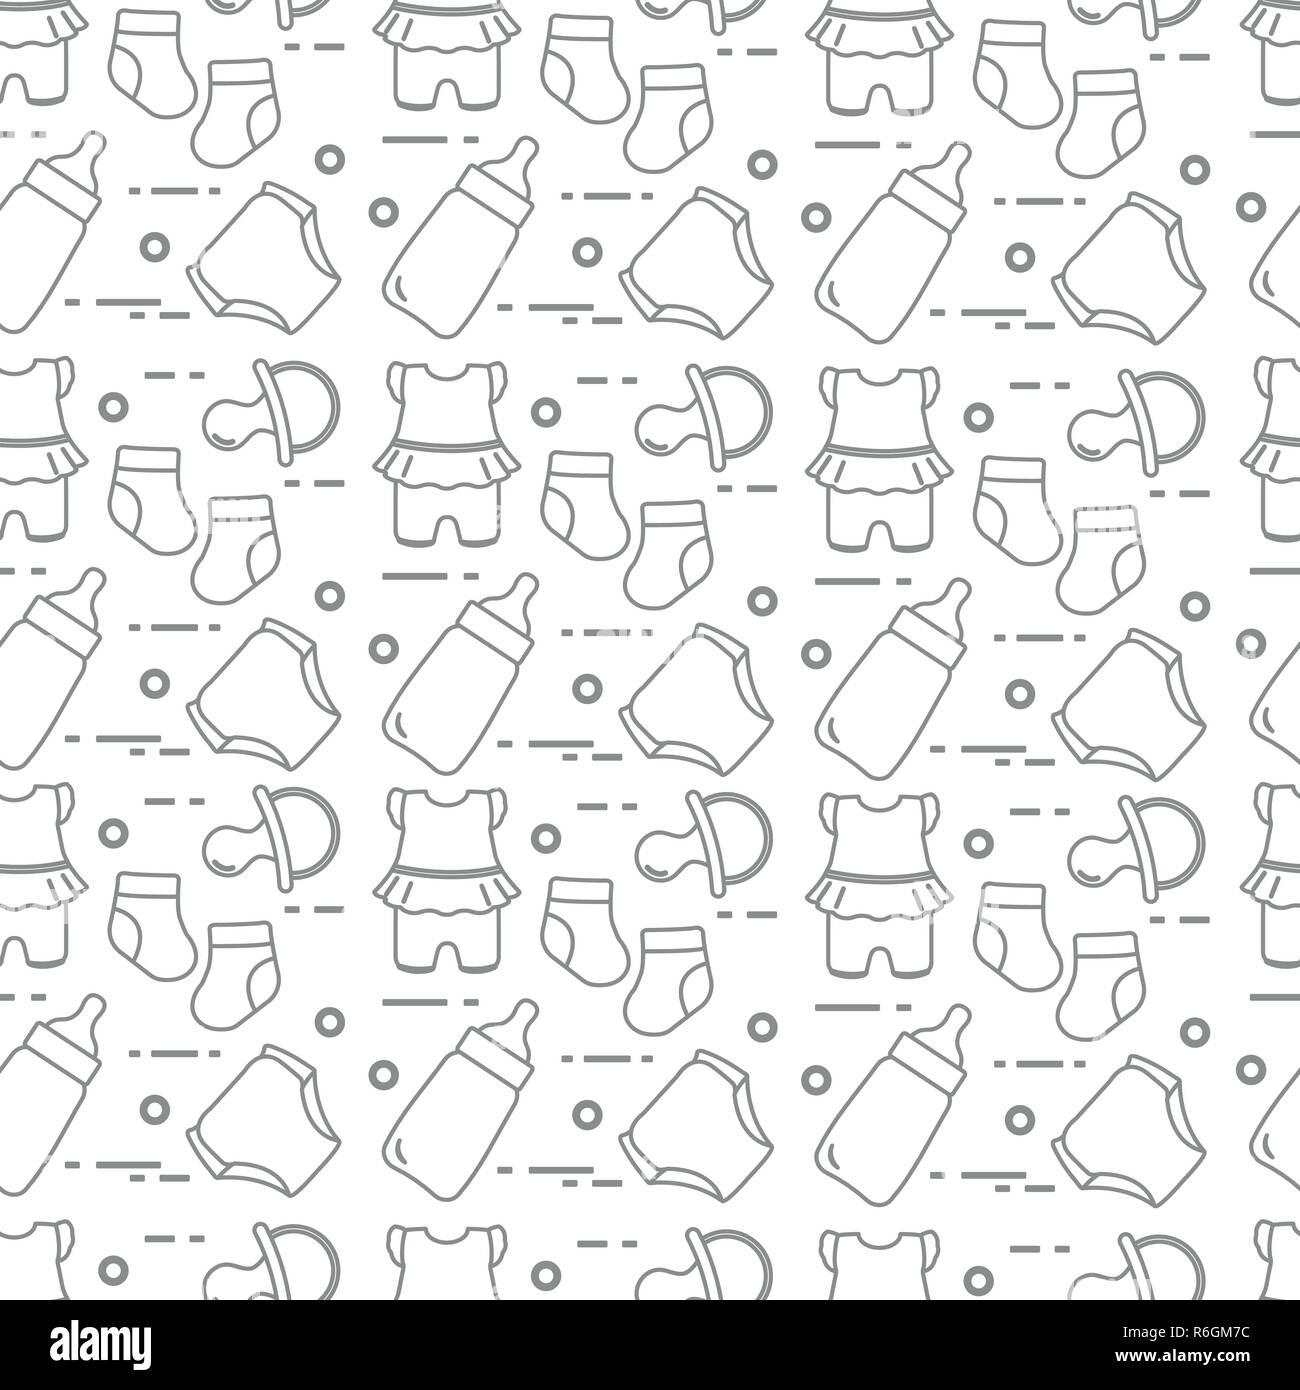 Seamless pattern with goods for babies. Newborn baby background. Baby bottle, nipple, socks, diapers, bodysuit. - Stock Image